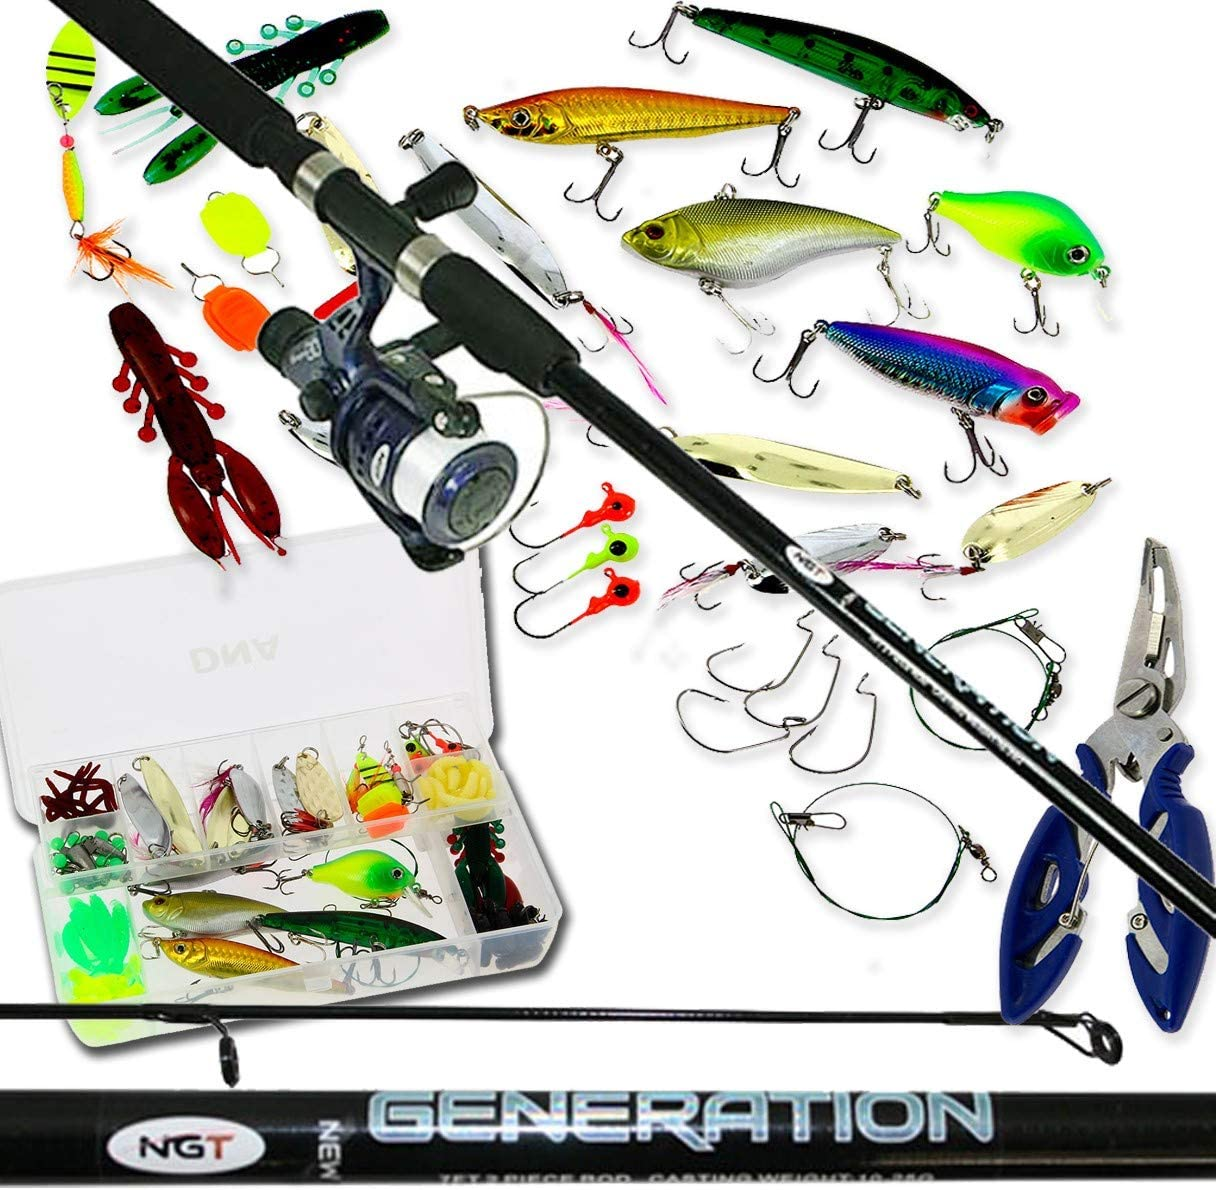 DNA Leisure Spinning Fishing 7ft 2pc Rod & Reel Full Set With 111Pc Lures Spinners Tackle Box Bass Pike Trout